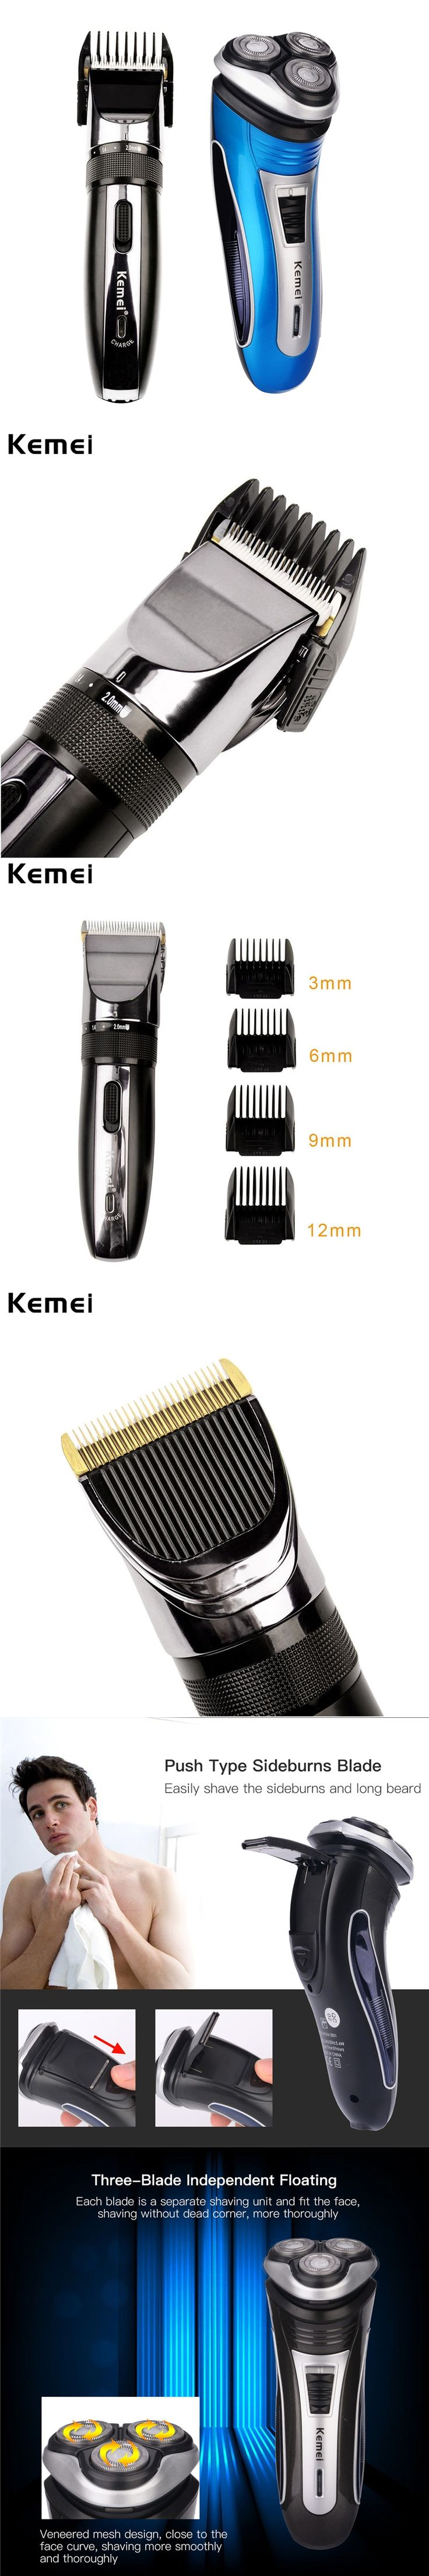 110-240V Kemei Electric Hair Clipper Rechargeable Hair Trimmer Shaver Razor Haircut Beard Trimmer Men Clipper Ceramic Blade